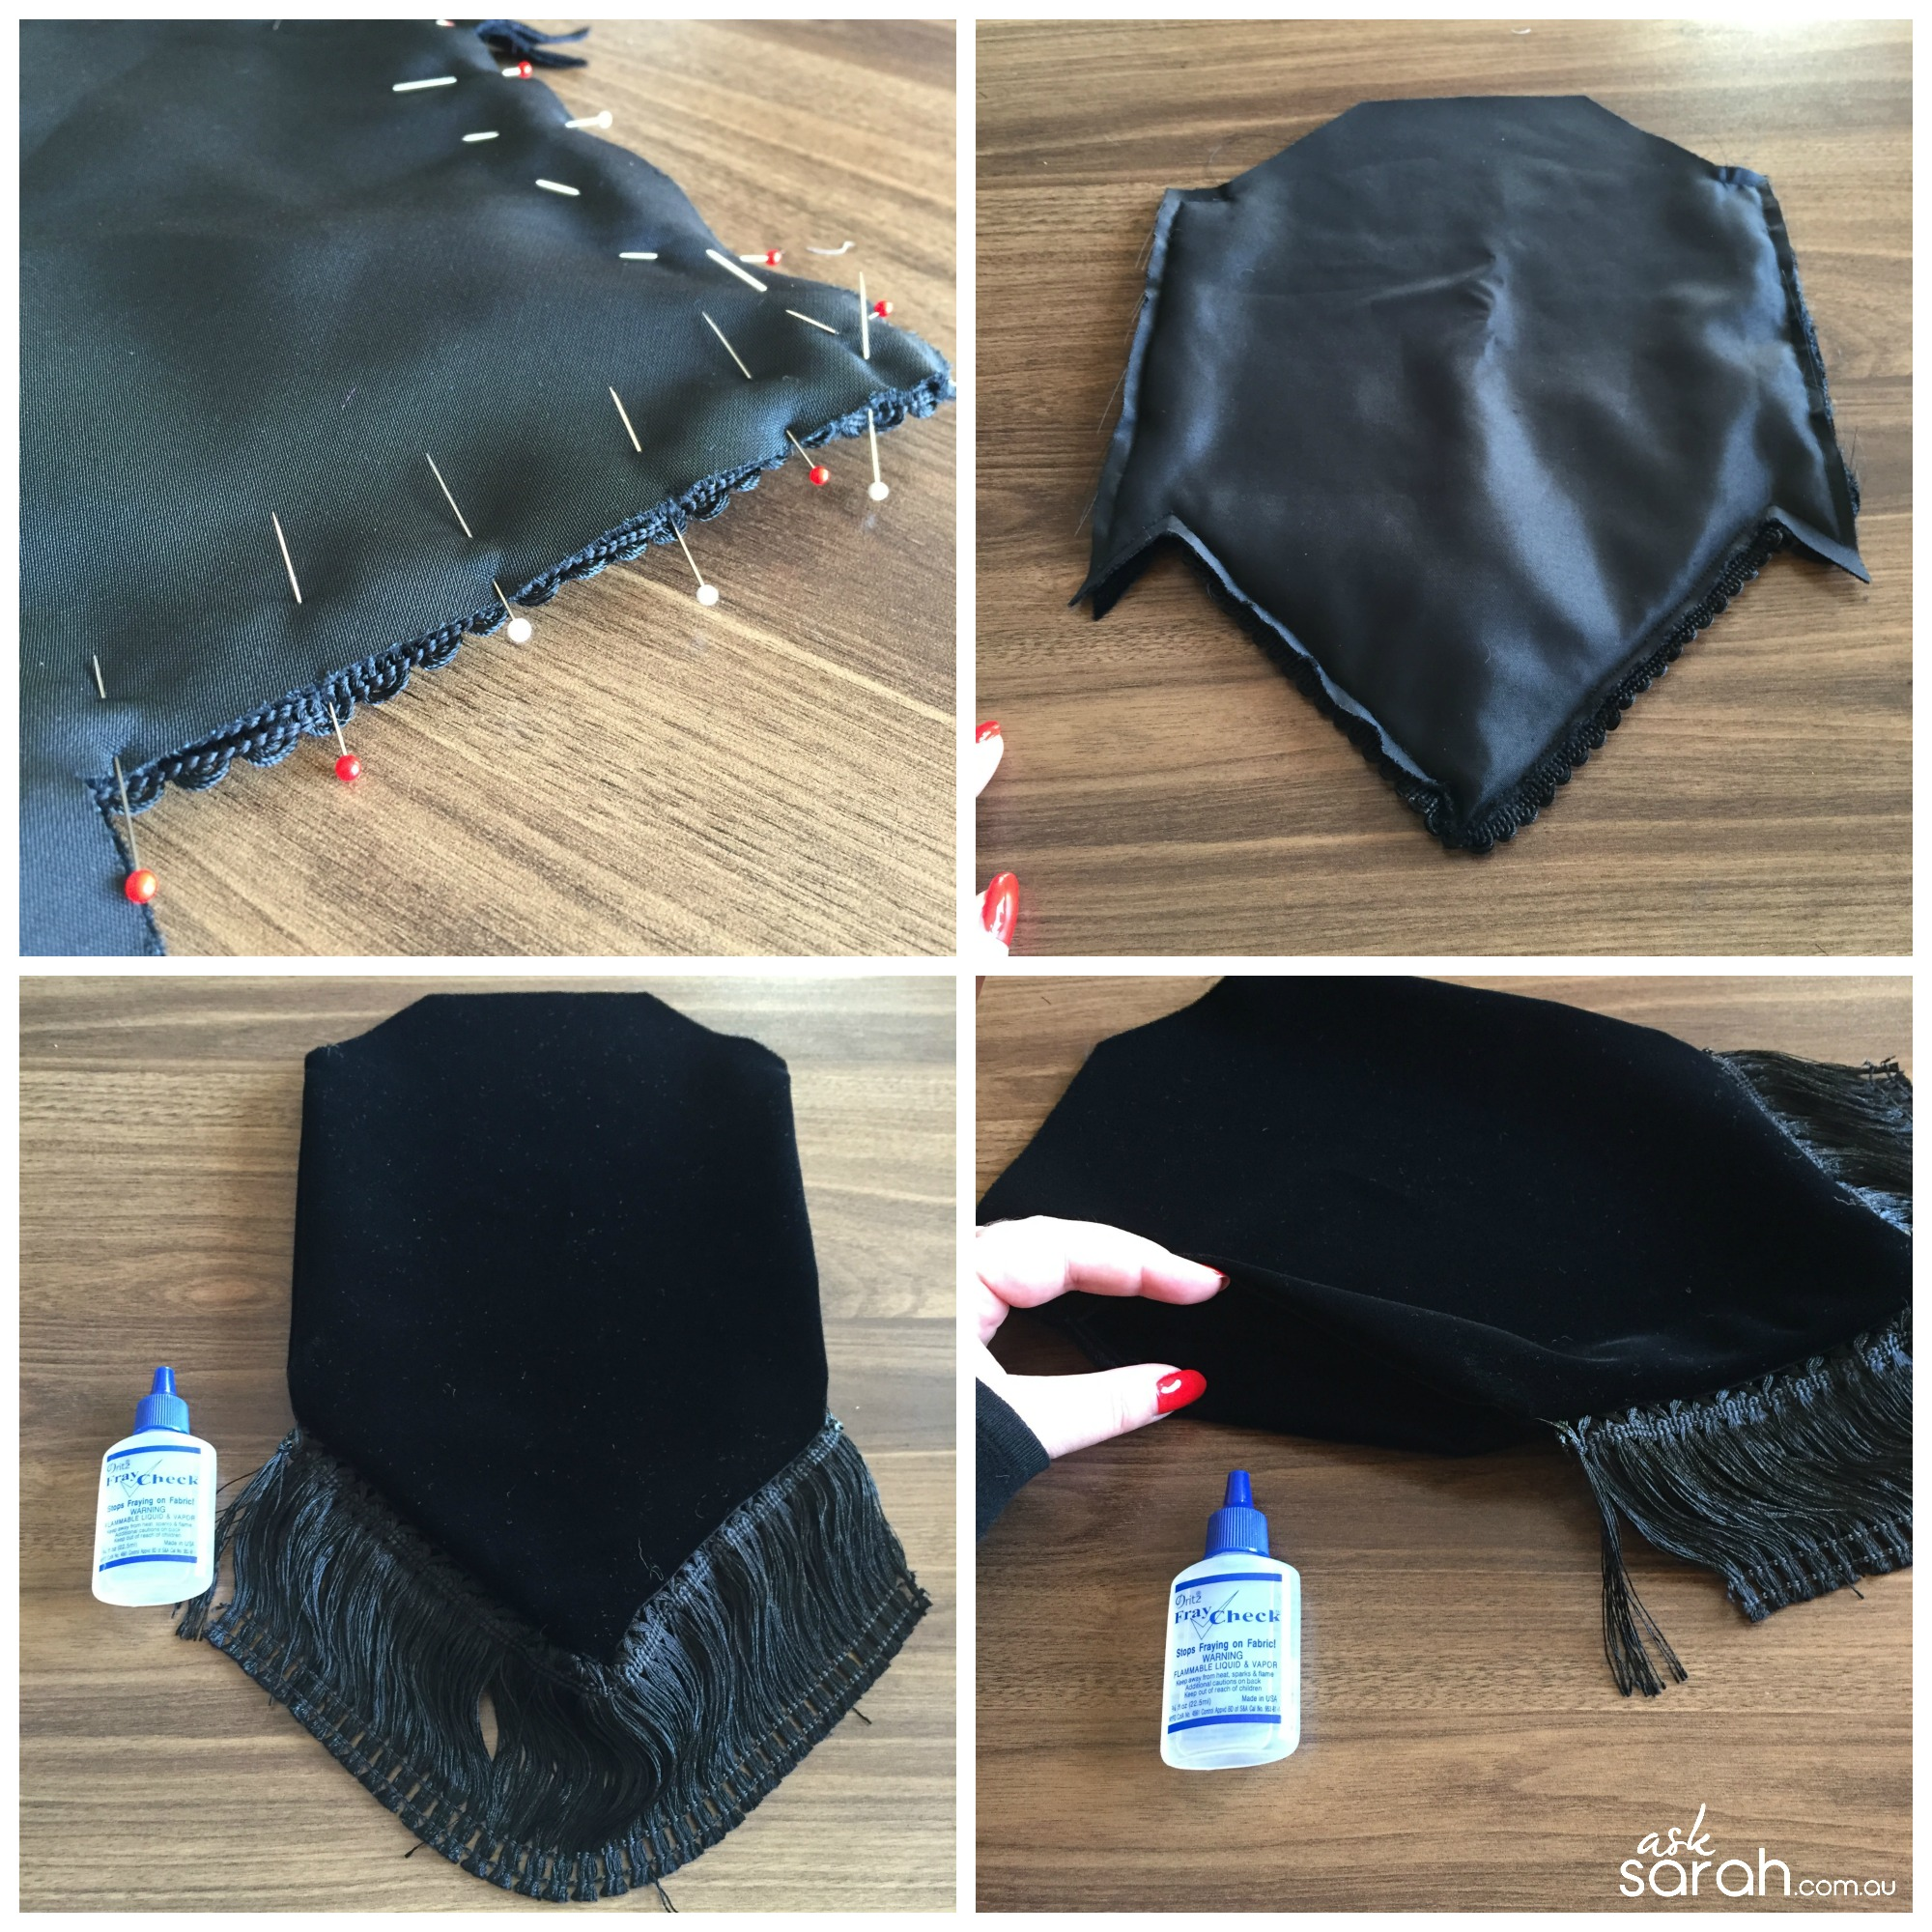 Sew: Vintage Inspired Velvet Evening Bag Tutorial {Just like the Tardis, its Bigger On The Inside!}